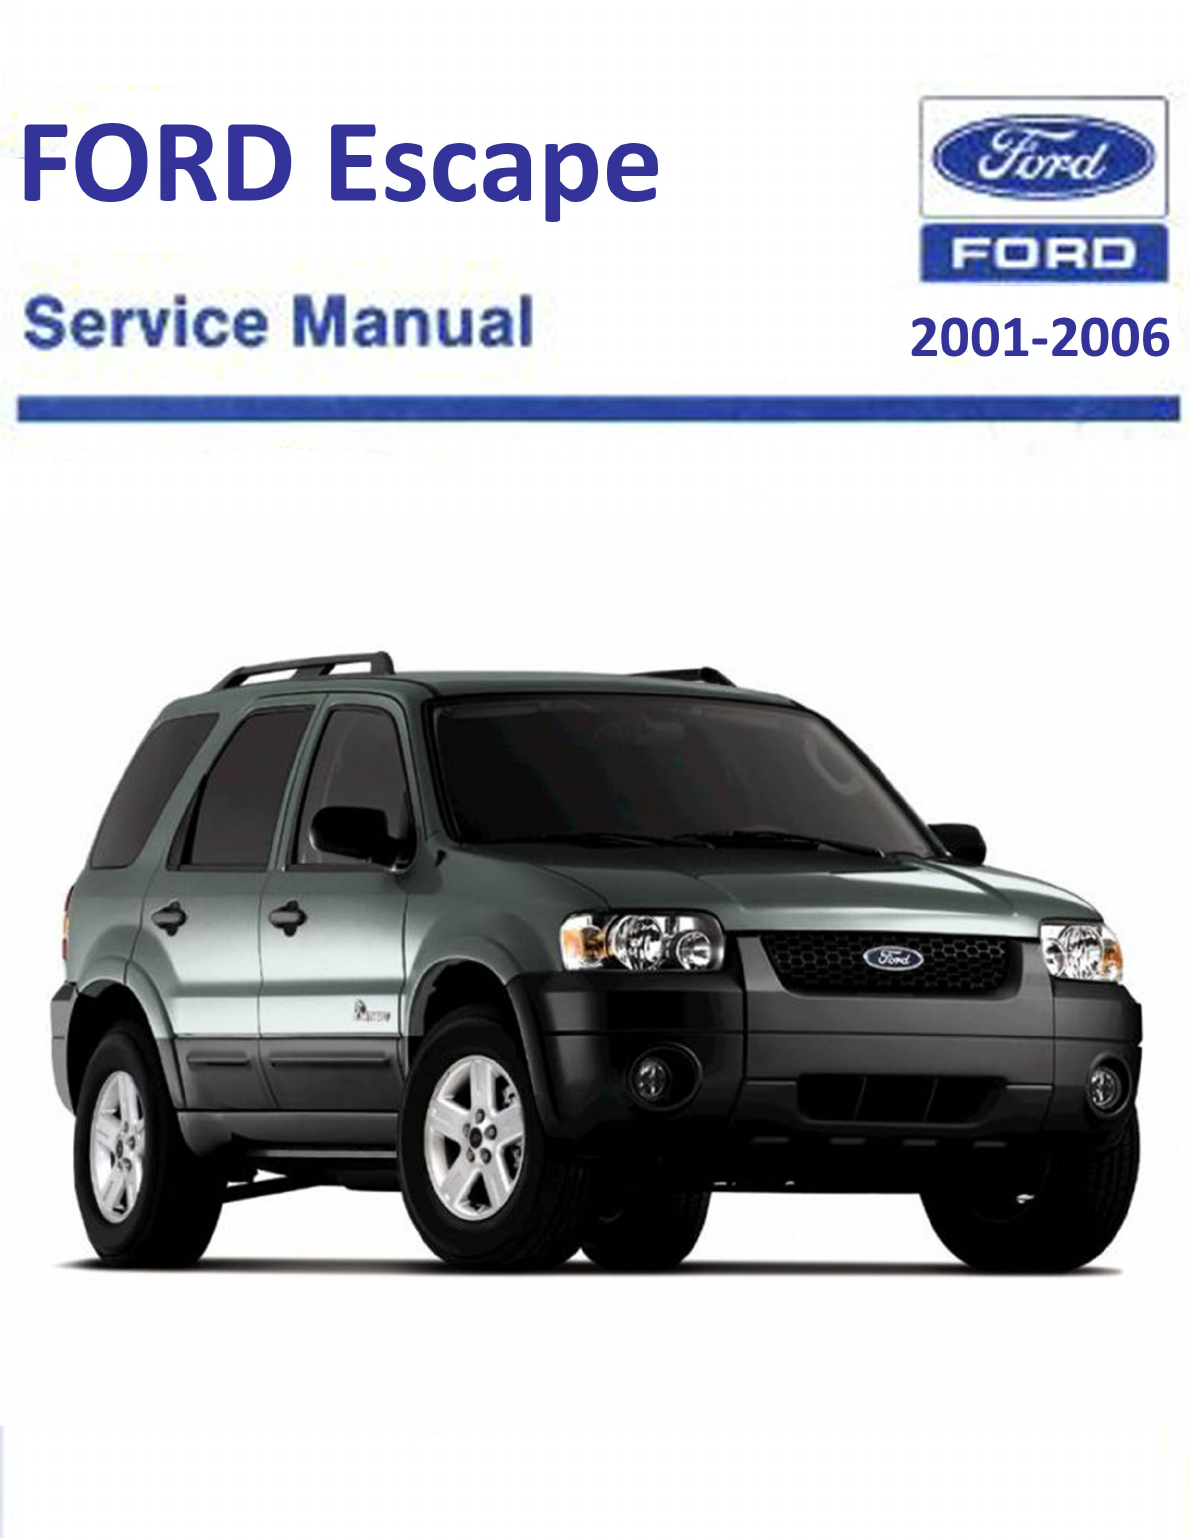 See our other Ford Escape Manuals: